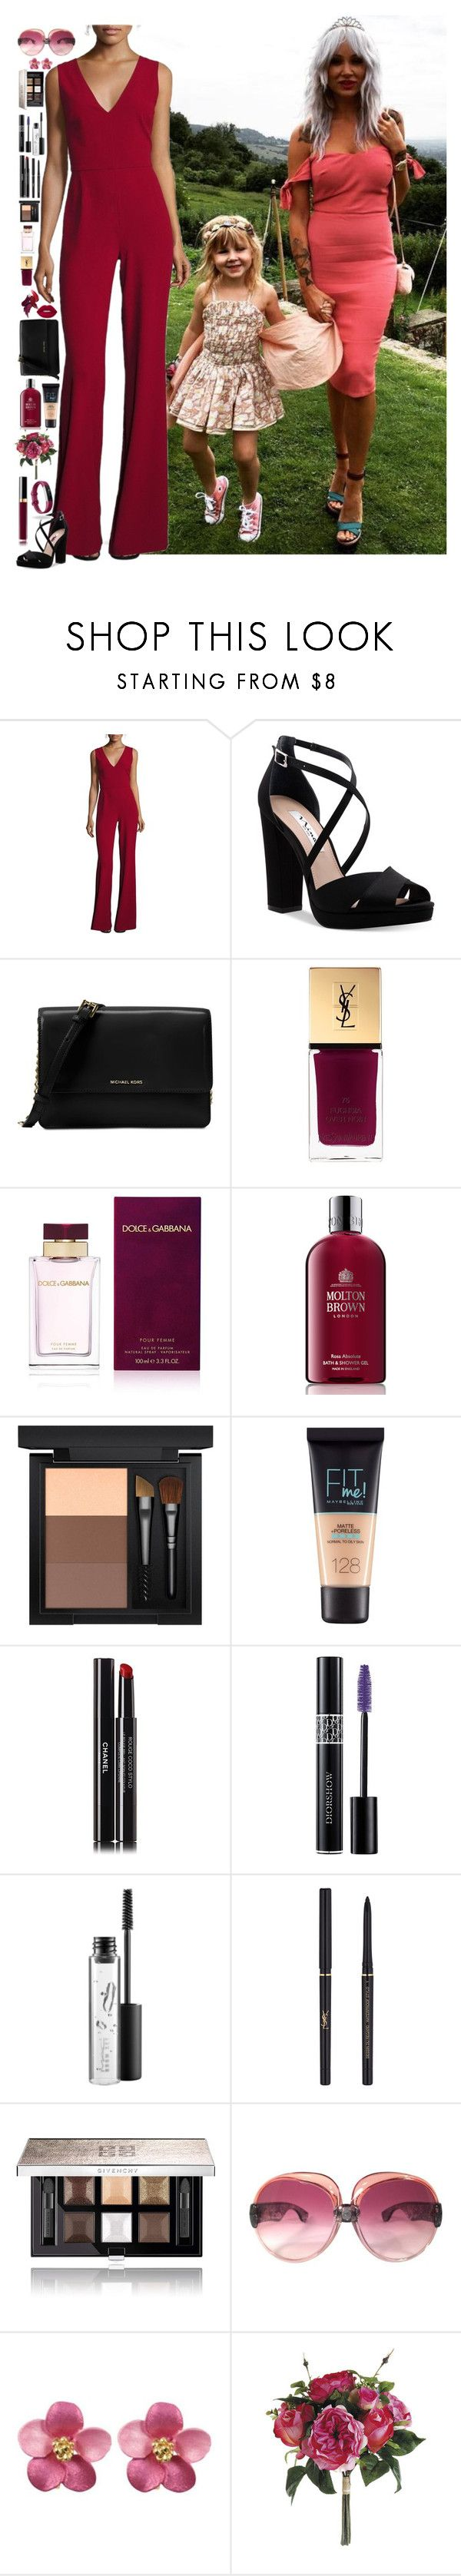 """Lou Teasdale #02"" by ambere3love34 ❤ liked on Polyvore featuring Alice + Olivia, Nina, Michael Kors, Yves Saint Laurent, Dolce&Gabbana, Molton Brown, Lime Crime, MAC Cosmetics, Maybelline and Chanel"